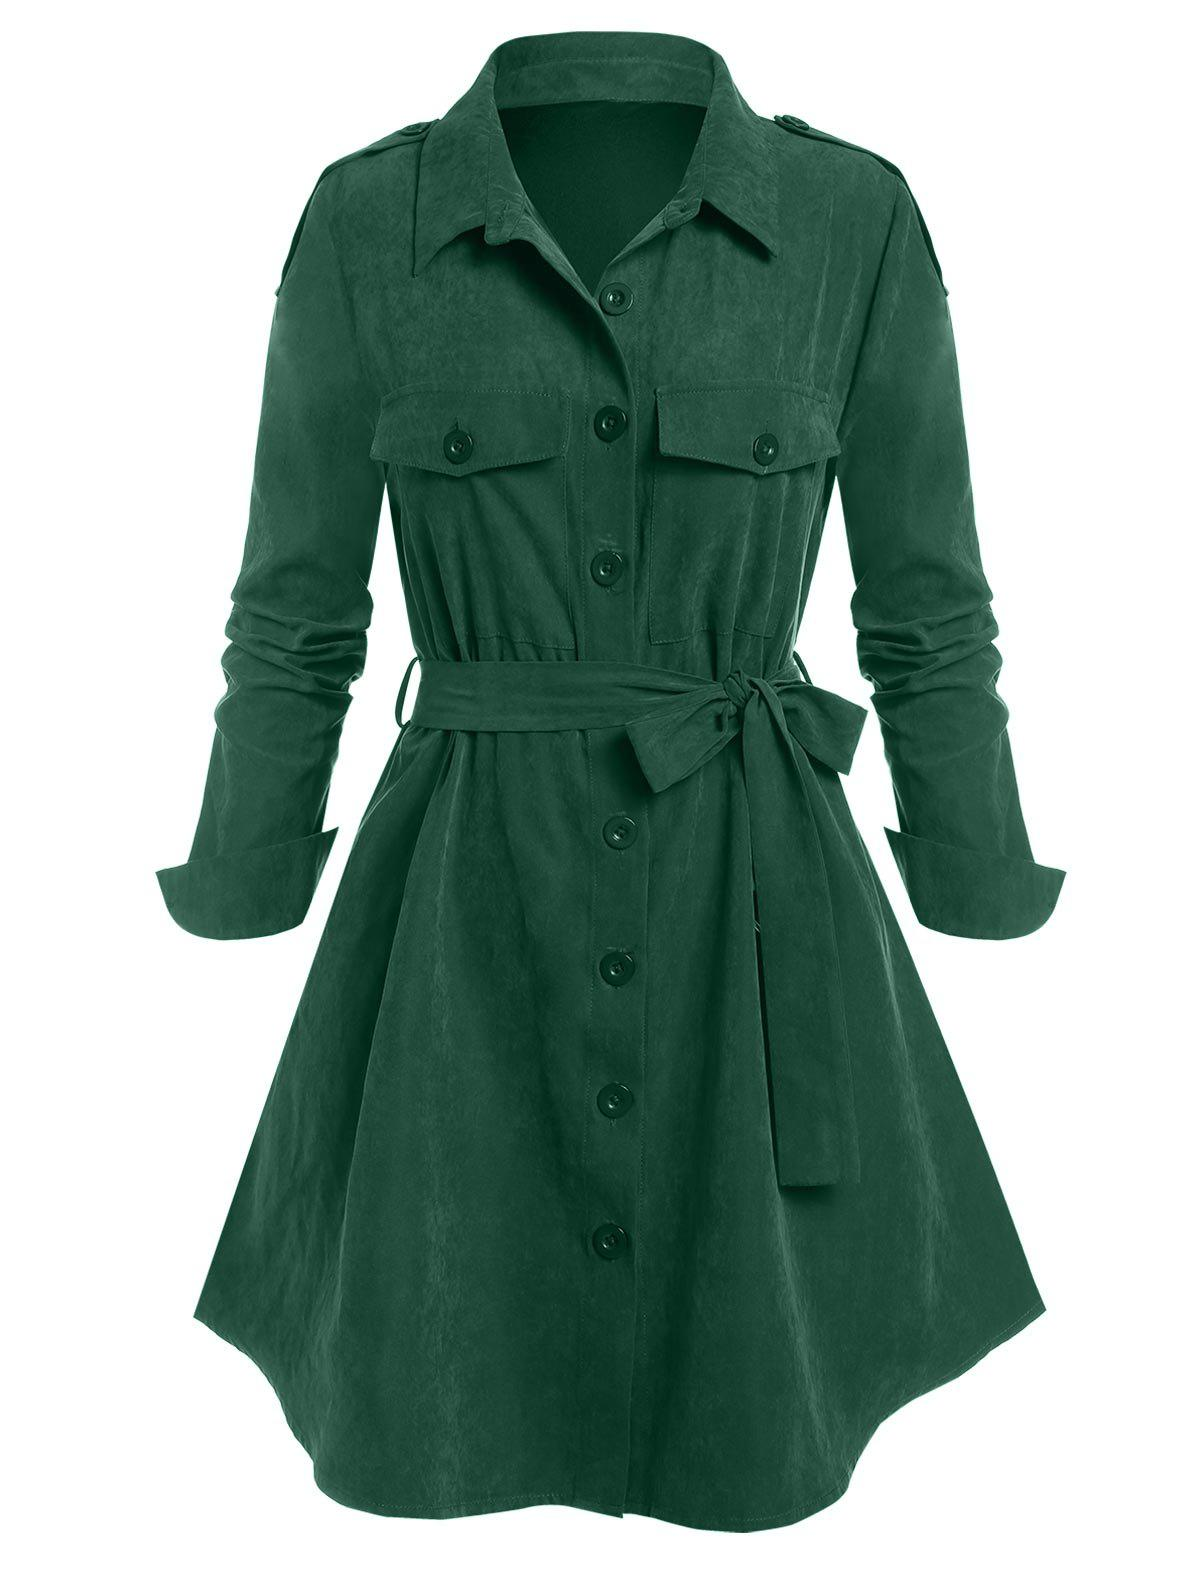 Plus Size Epaulet Single Breasted Belted Tunic Coat - DEEP GREEN 2X